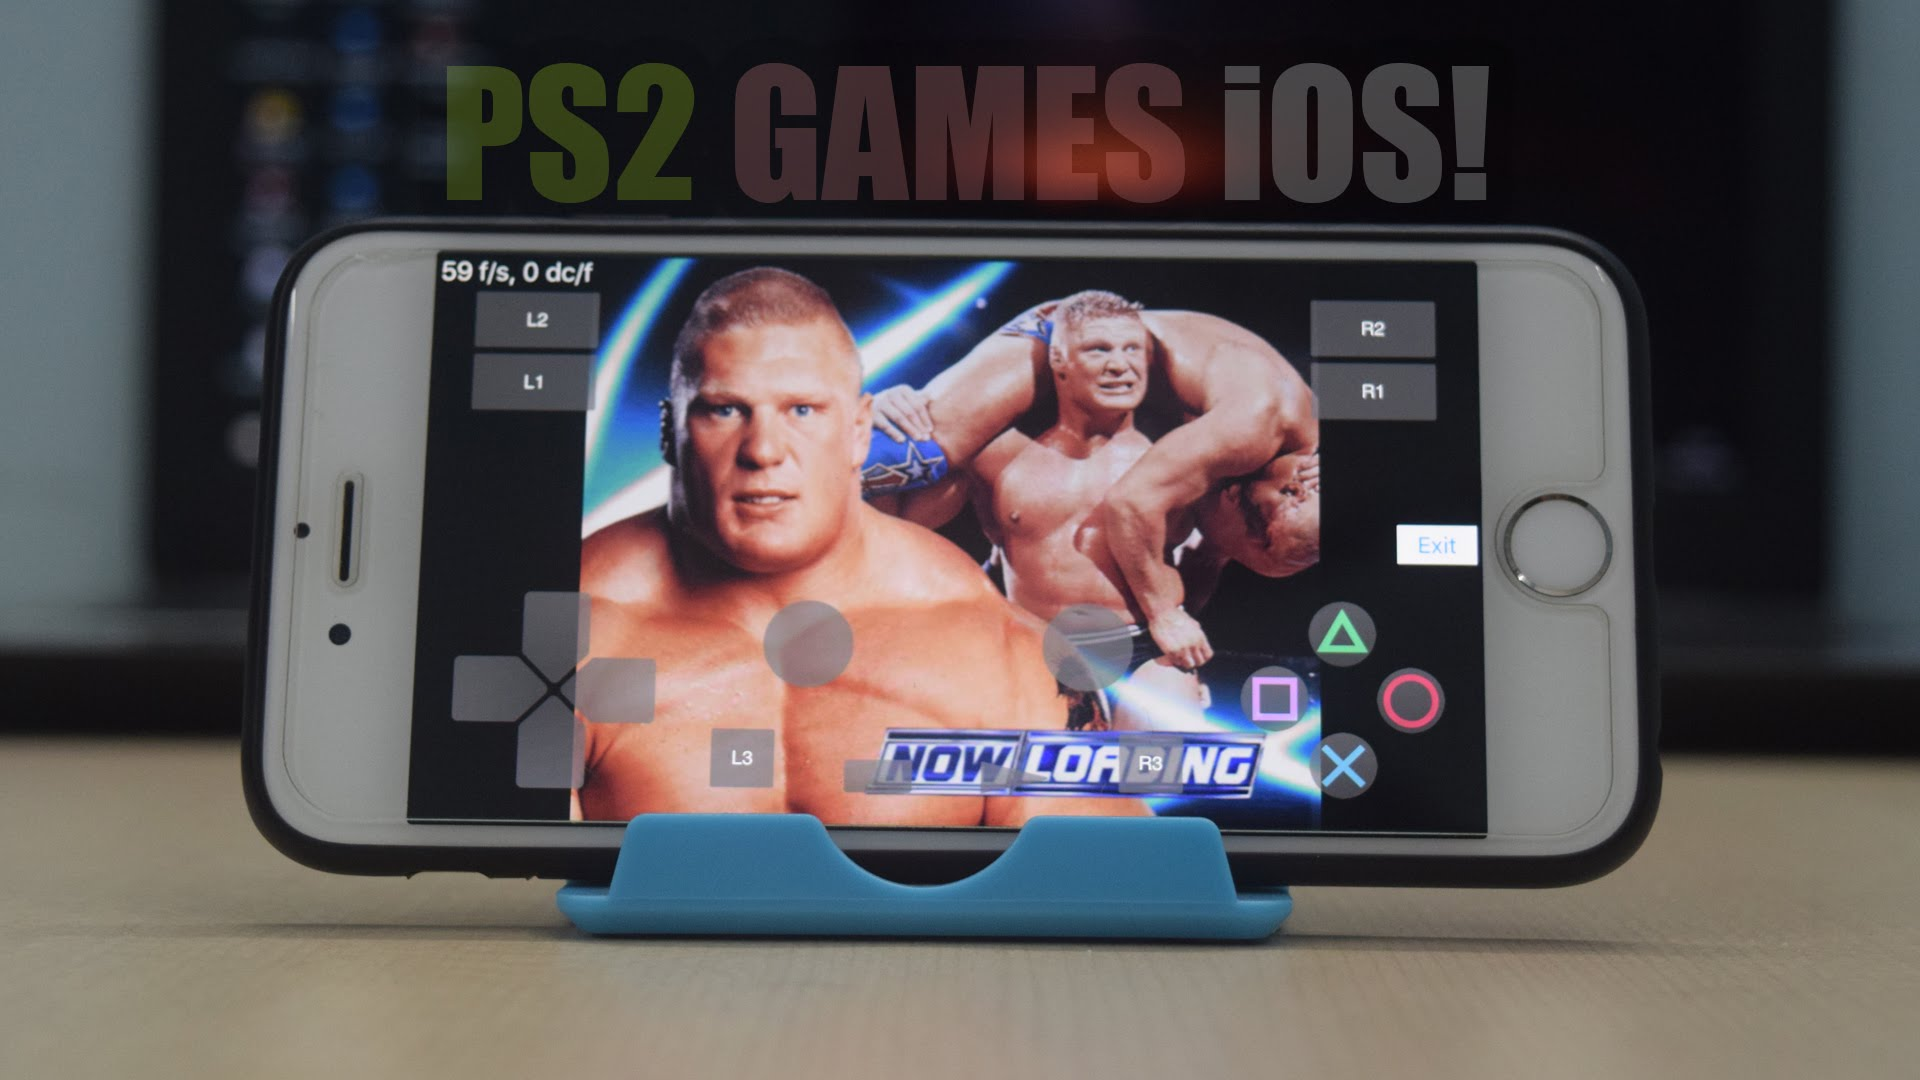 How To Play PS2 Games on iOS (LAGGY) | PlayStation 2 Emulator For